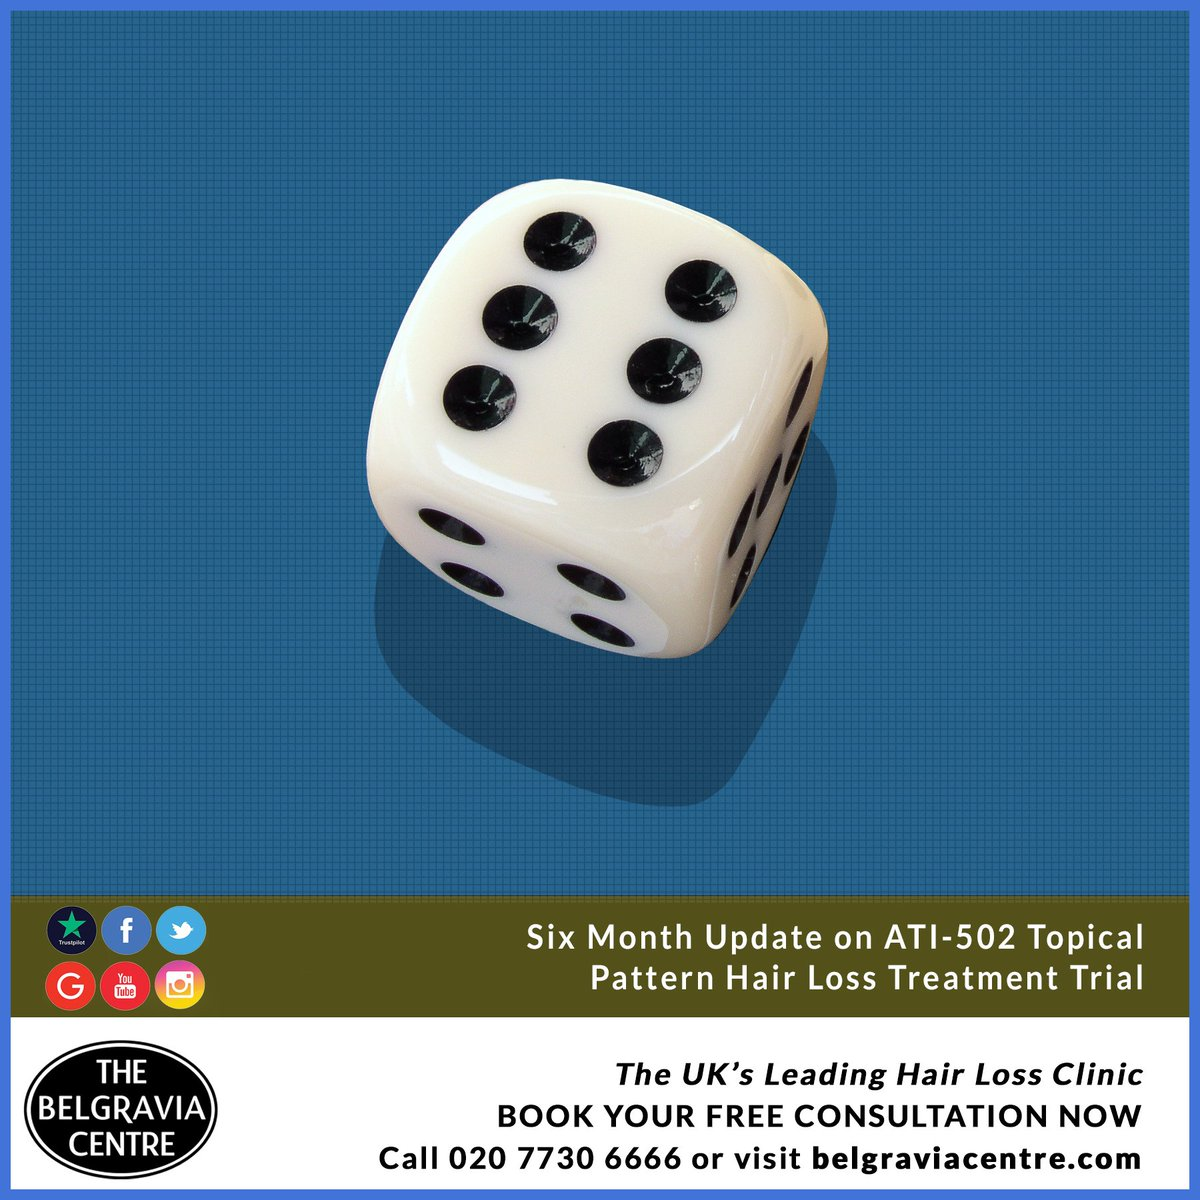 Six Month, Clinical Trial Mid-Point Update on ATI-502 Topical Male & Female Pattern Hair Loss Treatment: http://bit.ly/ATI-502PatternHairLossTreatmentUpdate … #hairloss #hairgrowth #belgraviacentre #ATI502 #hairlosstreatment #malepatternbaldness #femalepatternhairloss #hairlosssolution #hairregrowth #trial